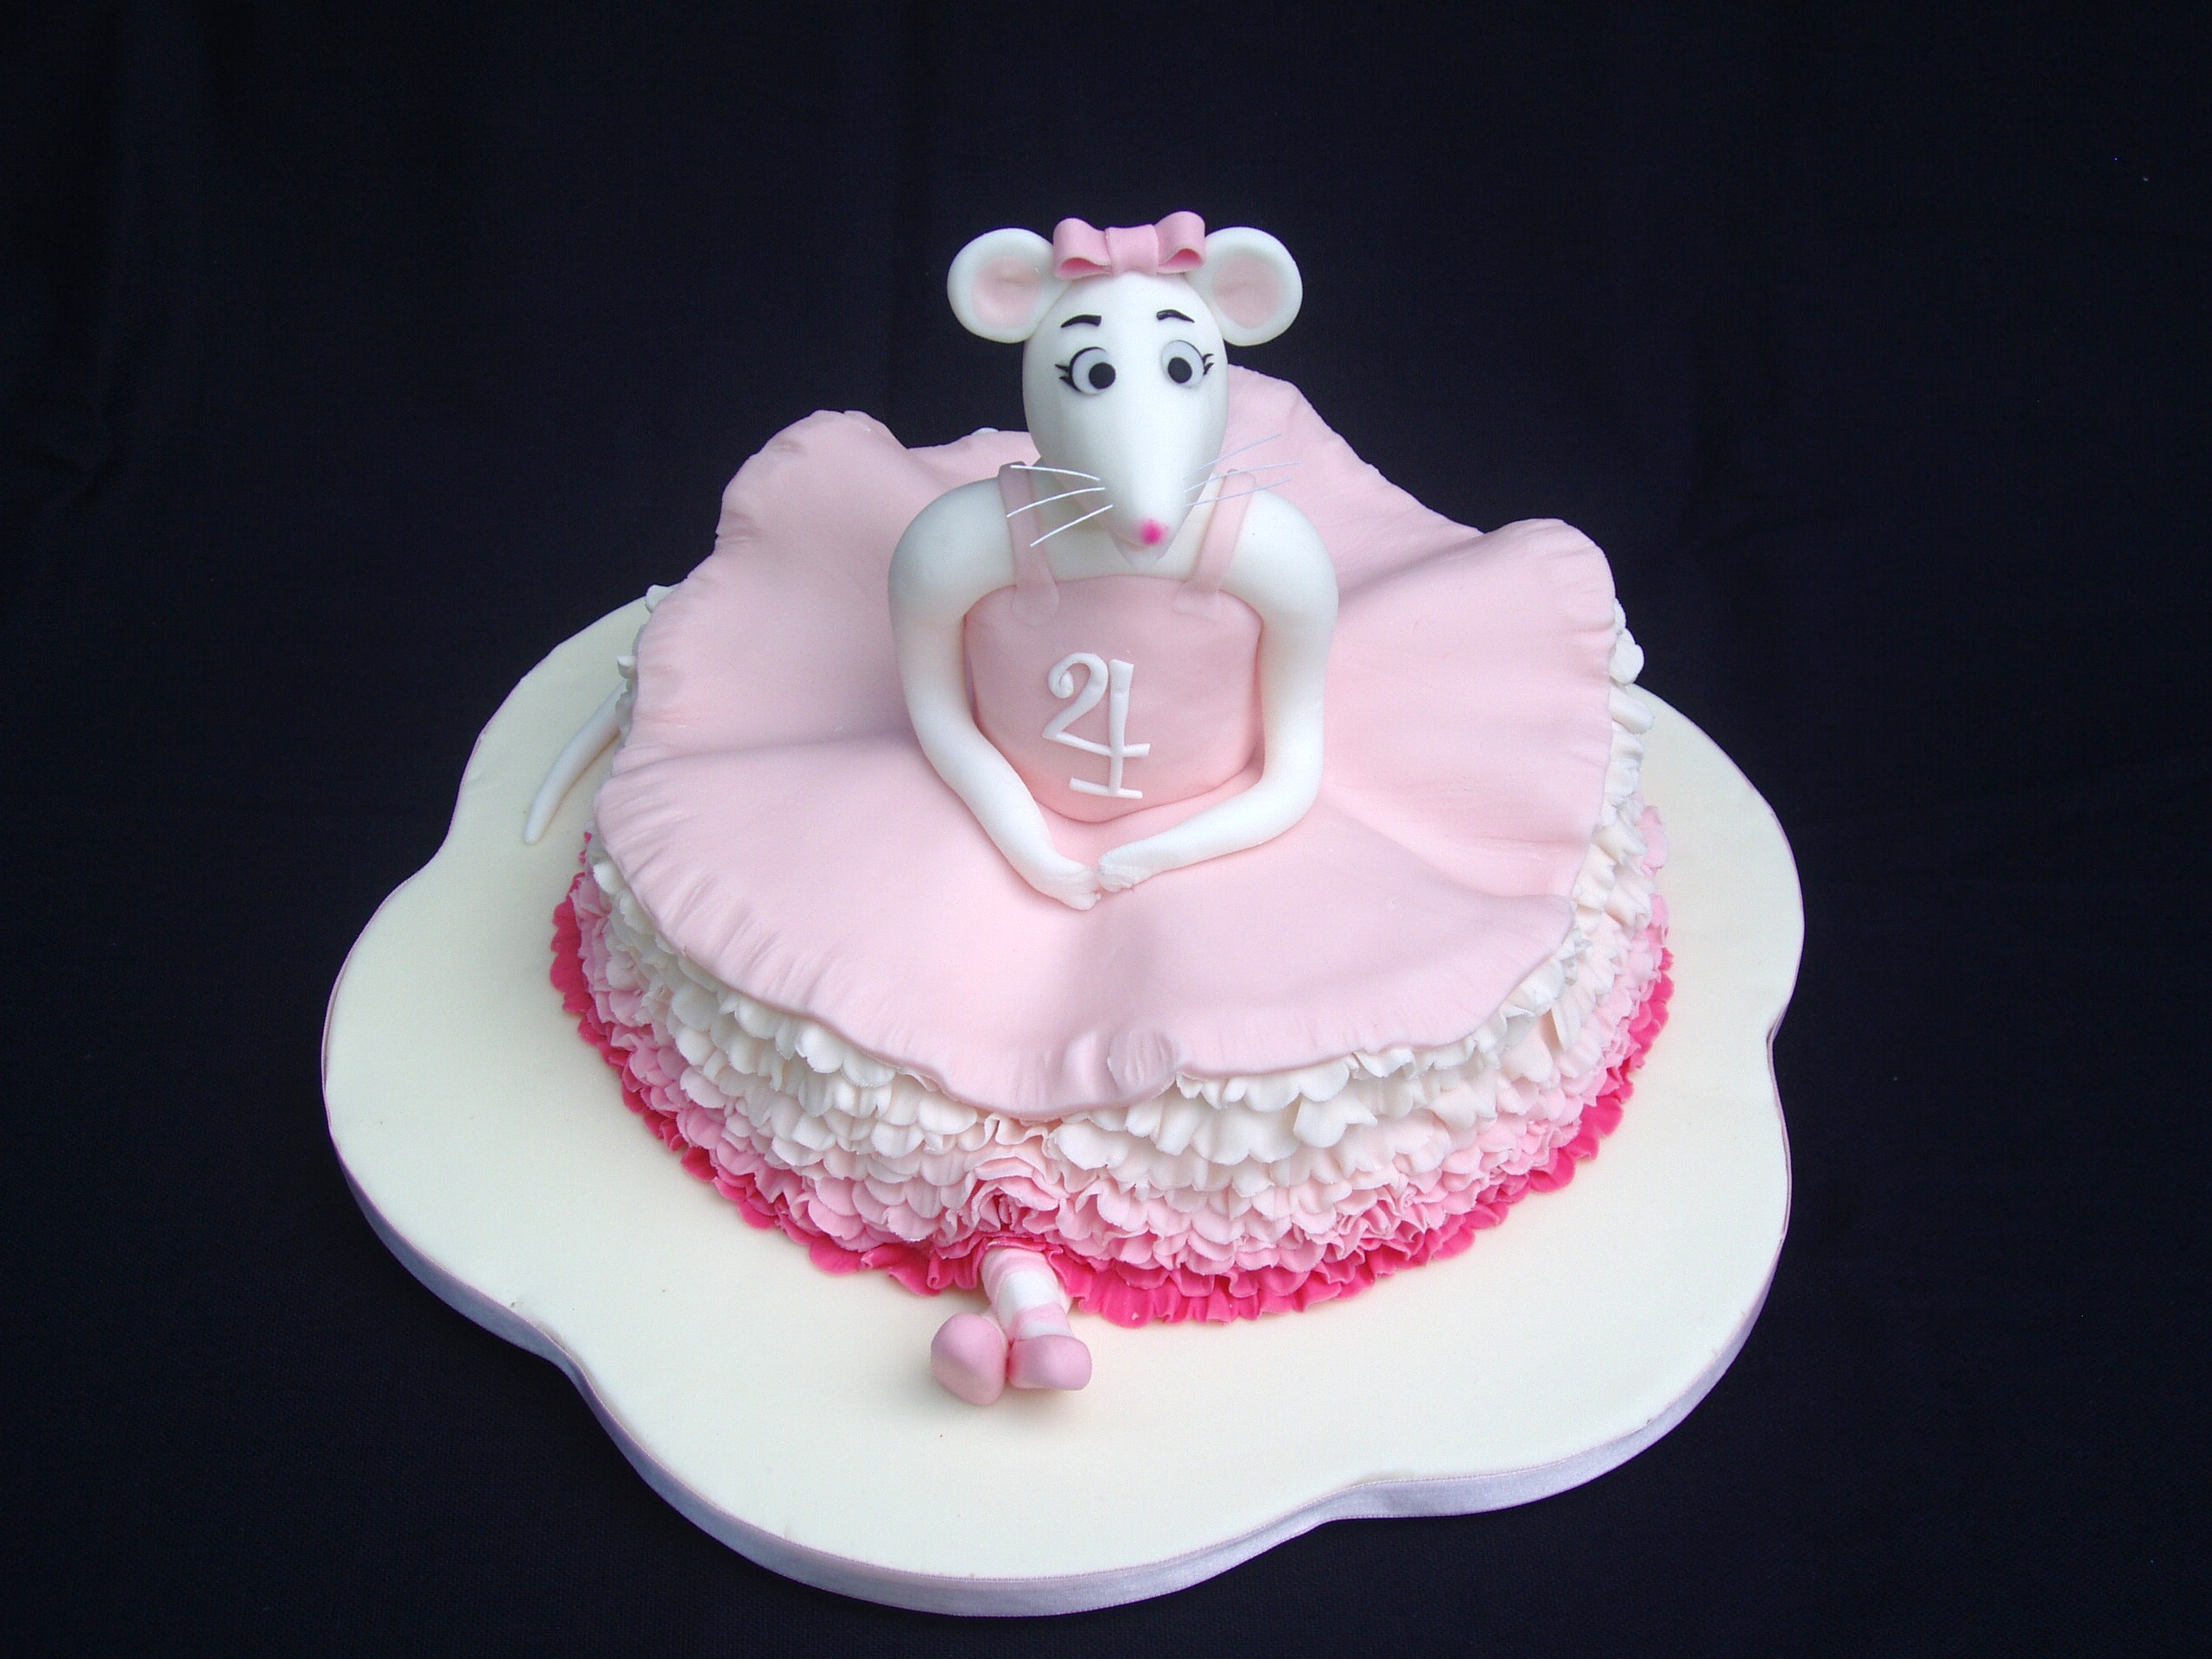 Cake Design Ballet : birthday cake designs Angelina Ballerina Flickr - Photo ...